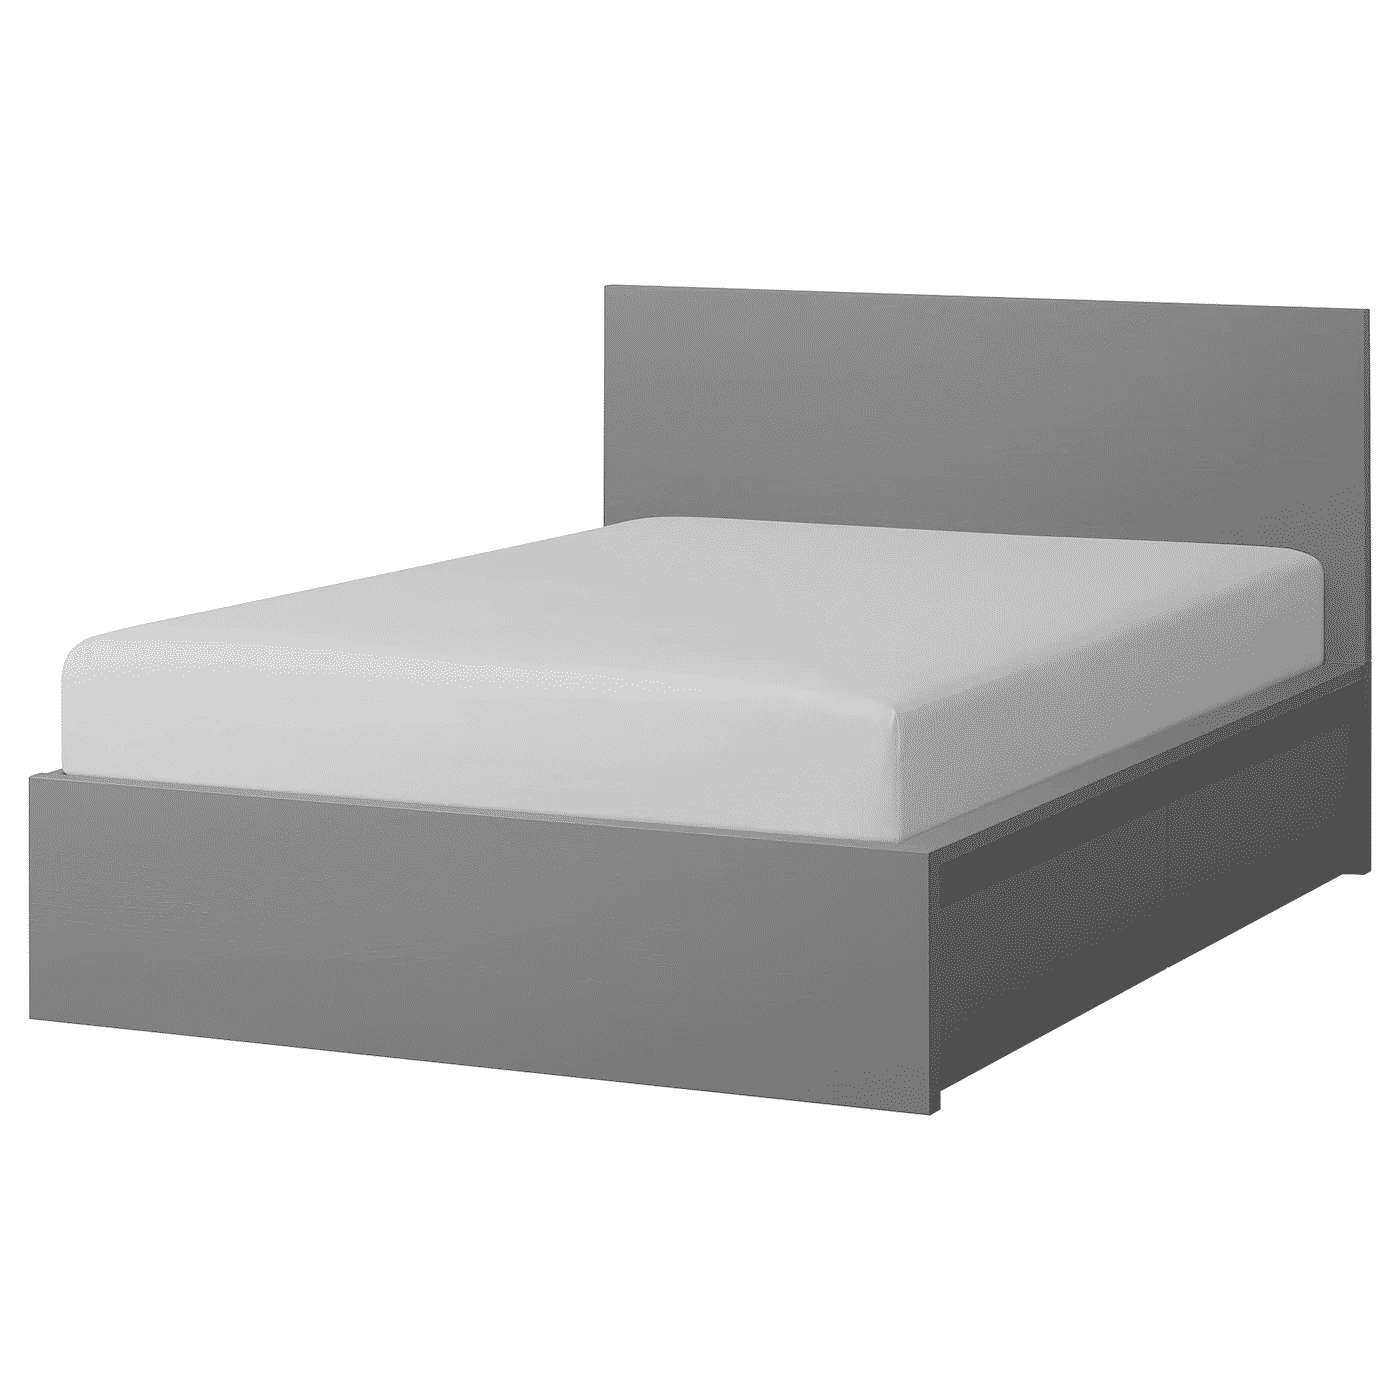 MALM high queen bedframe with storage